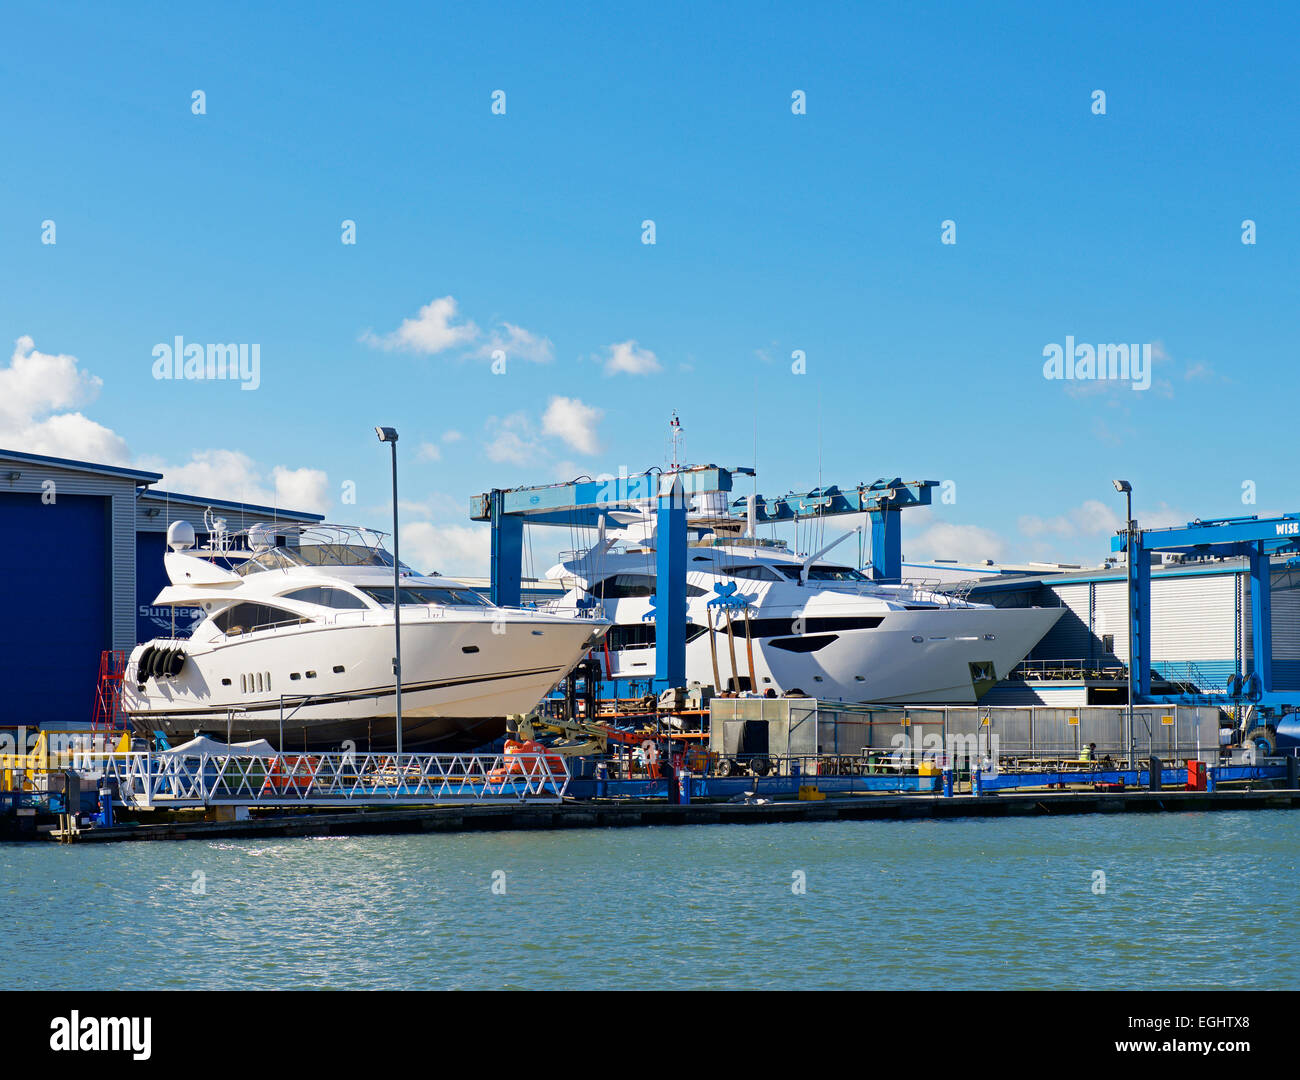 The quay at Poole, Dorset, England UK, with boat lifts - Stock Image